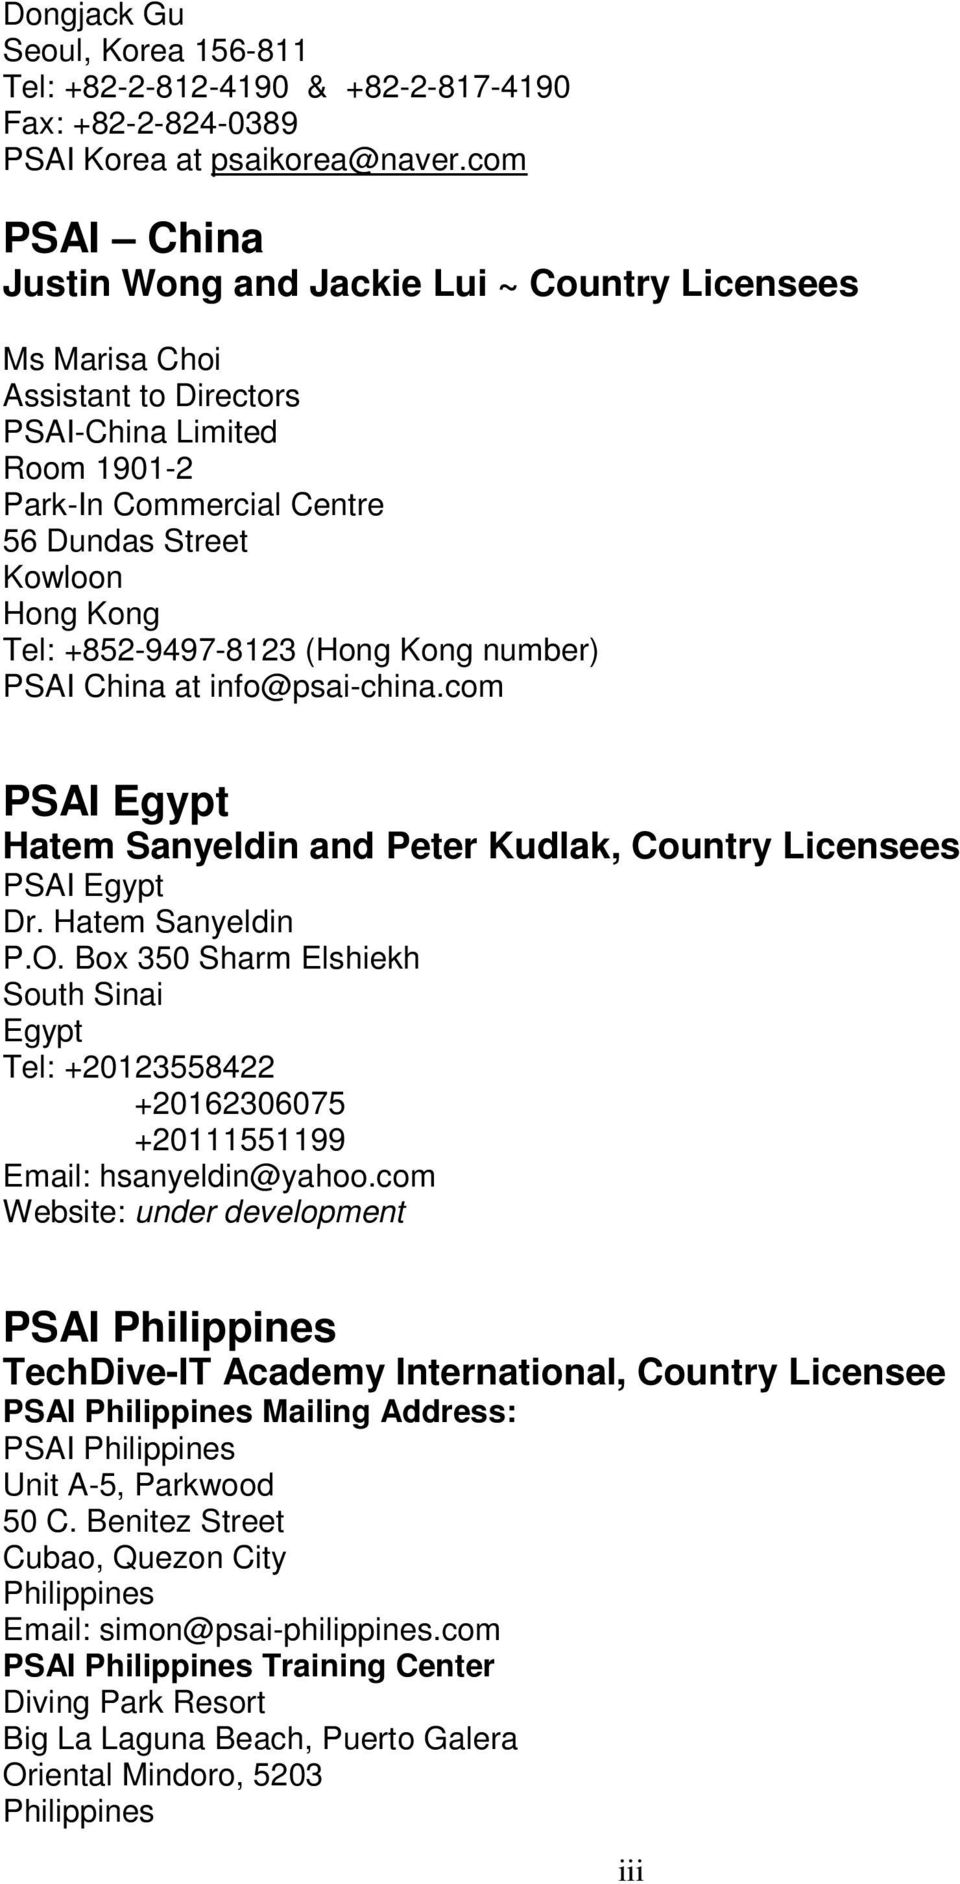 +852-9497-8123 (Hong Kong number) PSAI China at info@psai-china.com PSAI Egypt Hatem Sanyeldin and Peter Kudlak, Country Licensees PSAI Egypt Dr. Hatem Sanyeldin P.O.